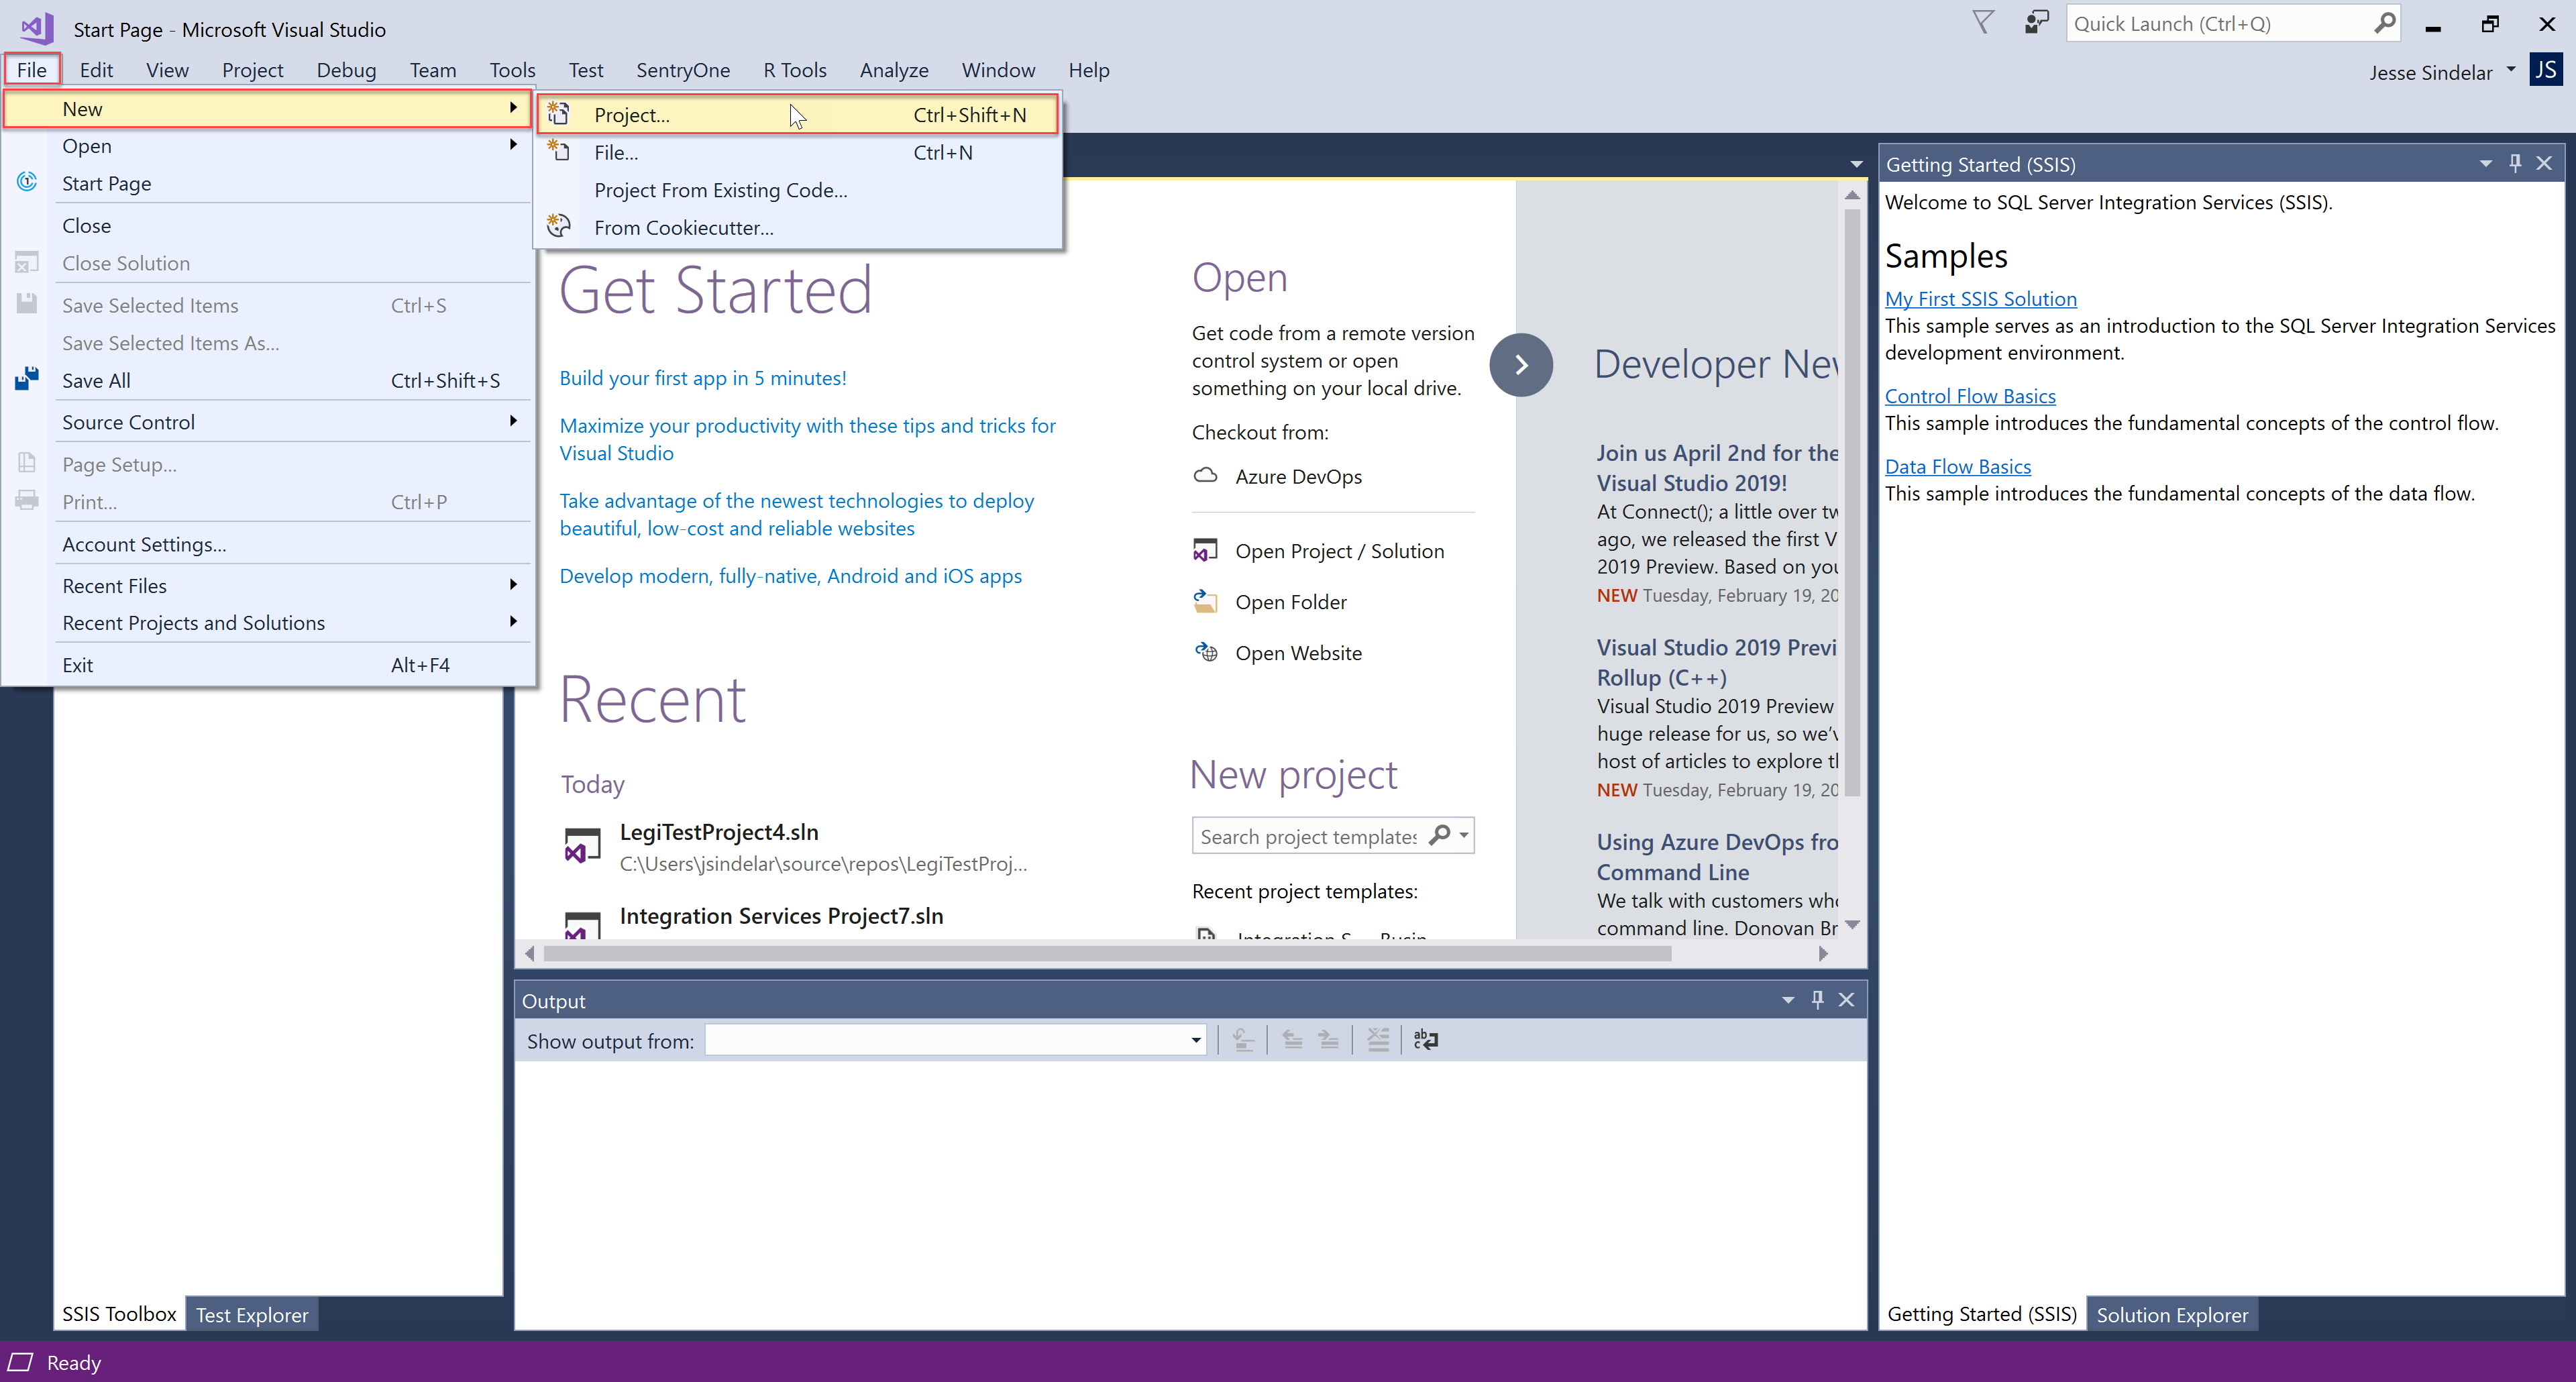 SentryOne Test New Visual Studio Project